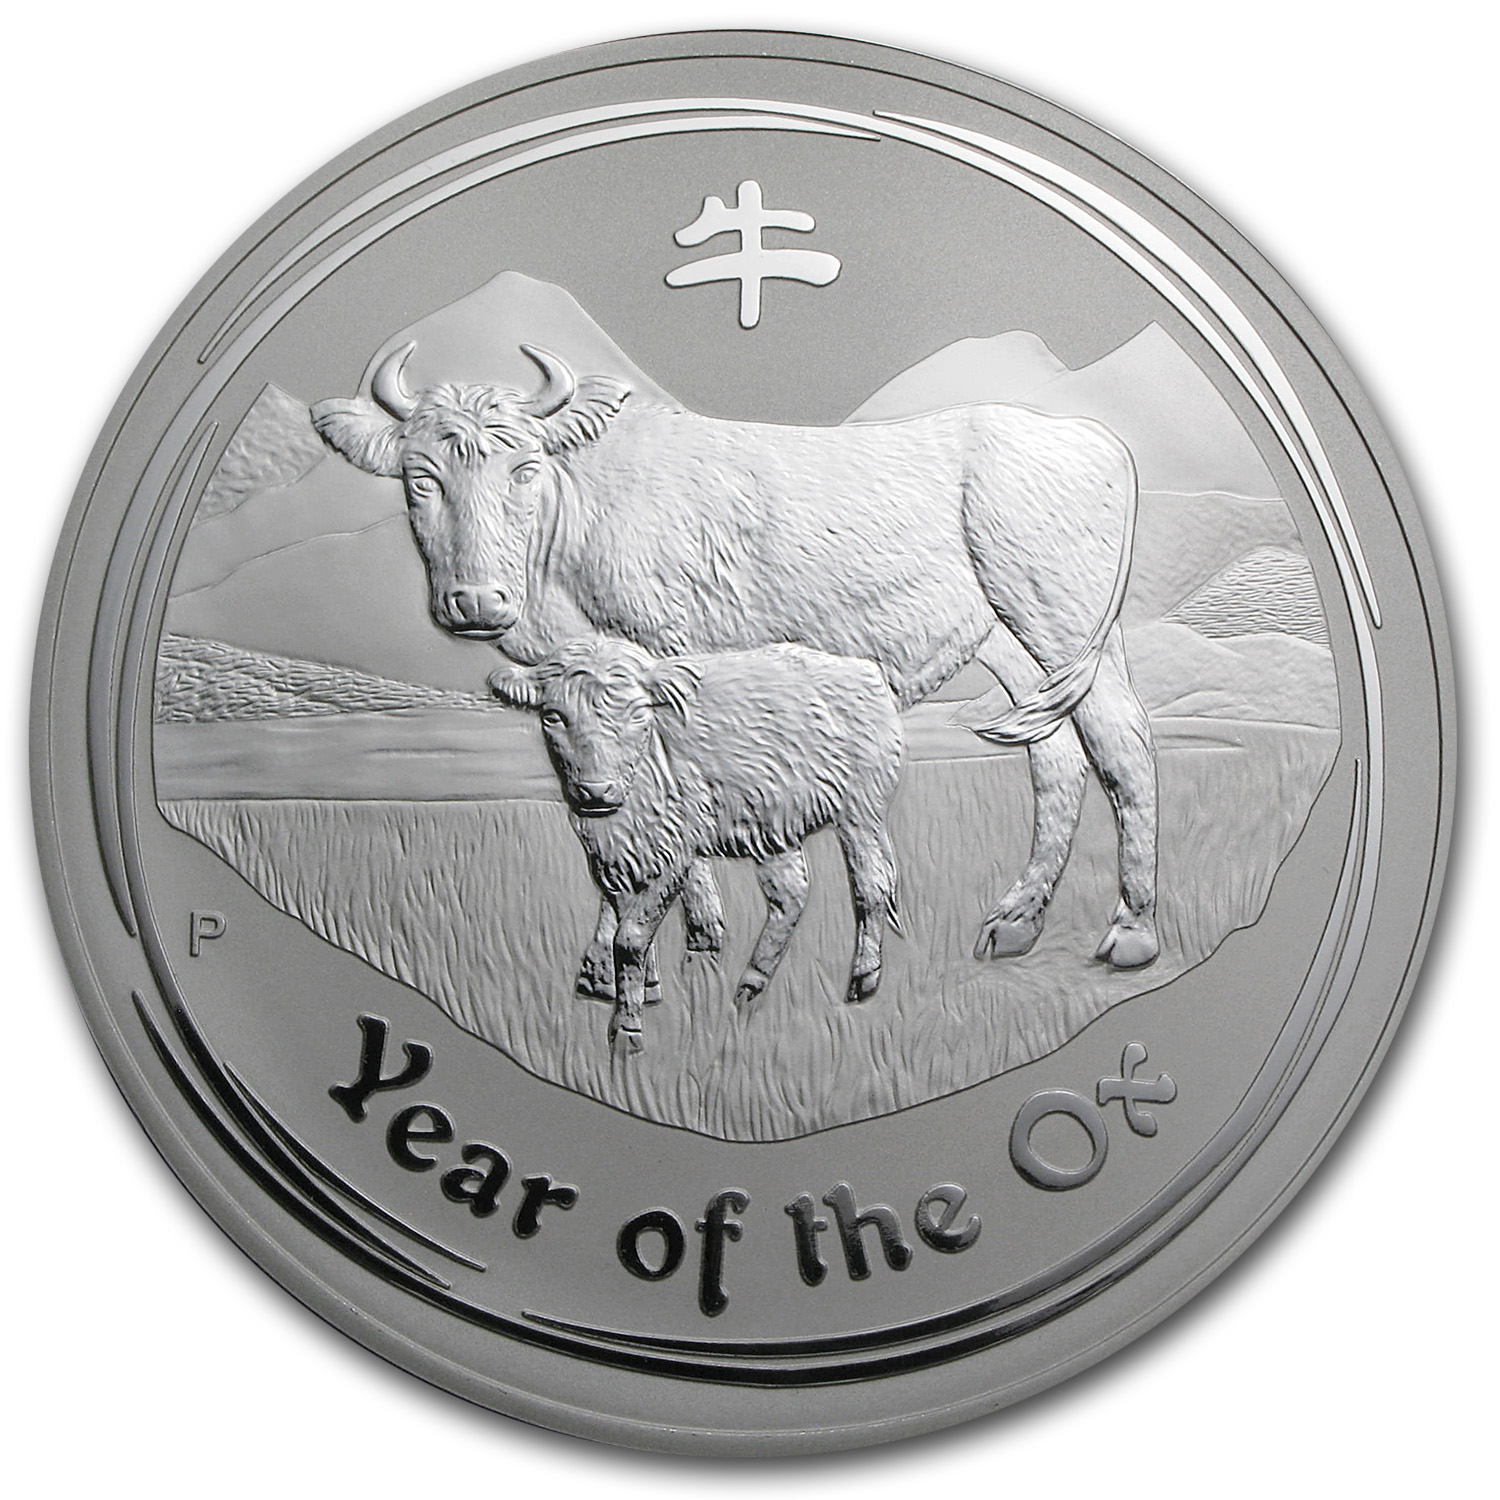 2009 Australia 1 kilo Silver Year of the Ox BU (Series II)